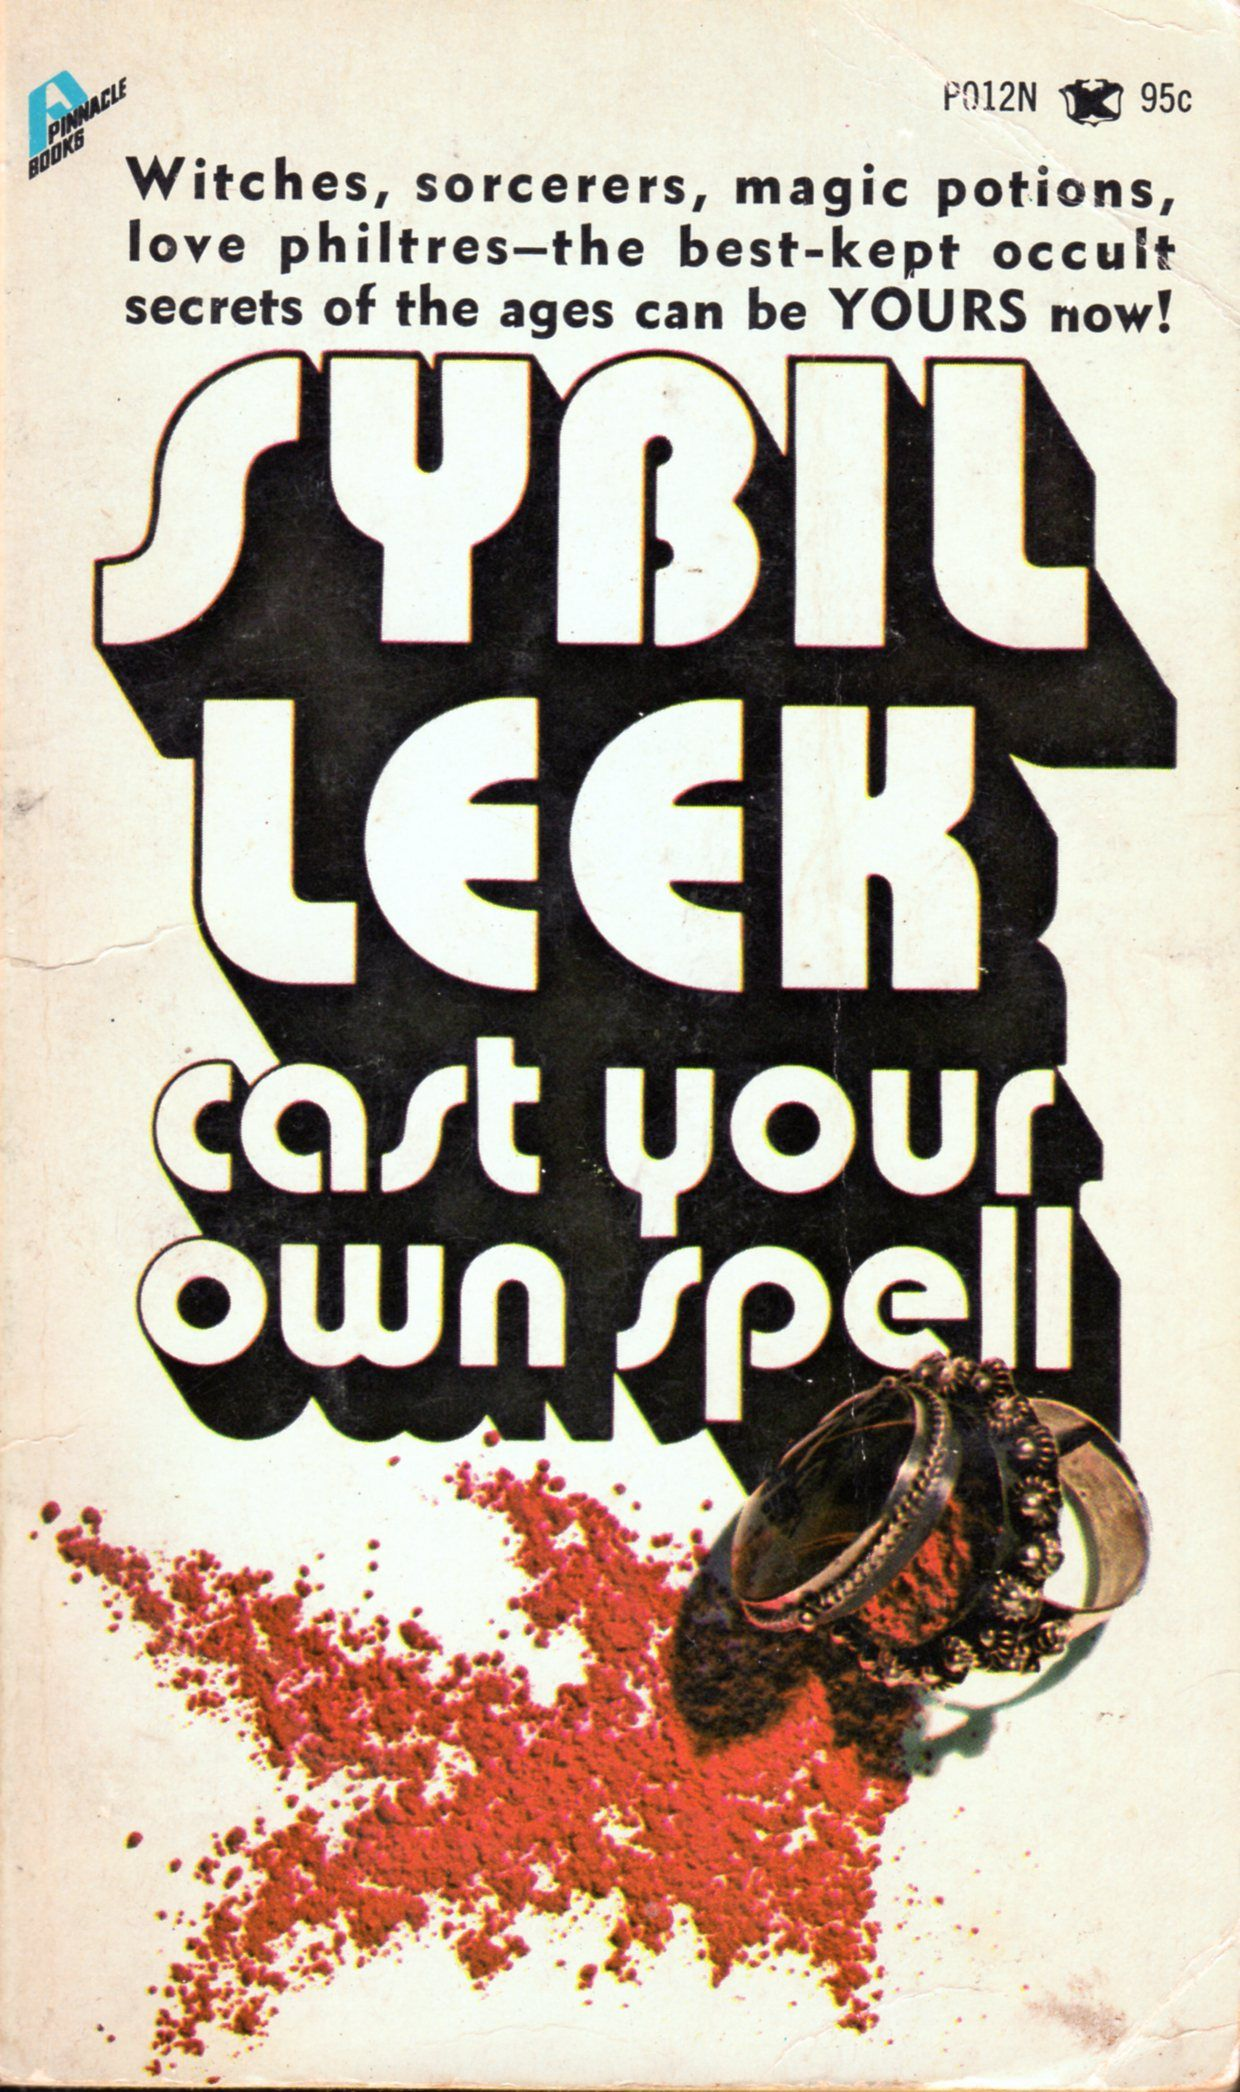 Cast Your Own Spell - Sybil Leek   My Books - A Cover